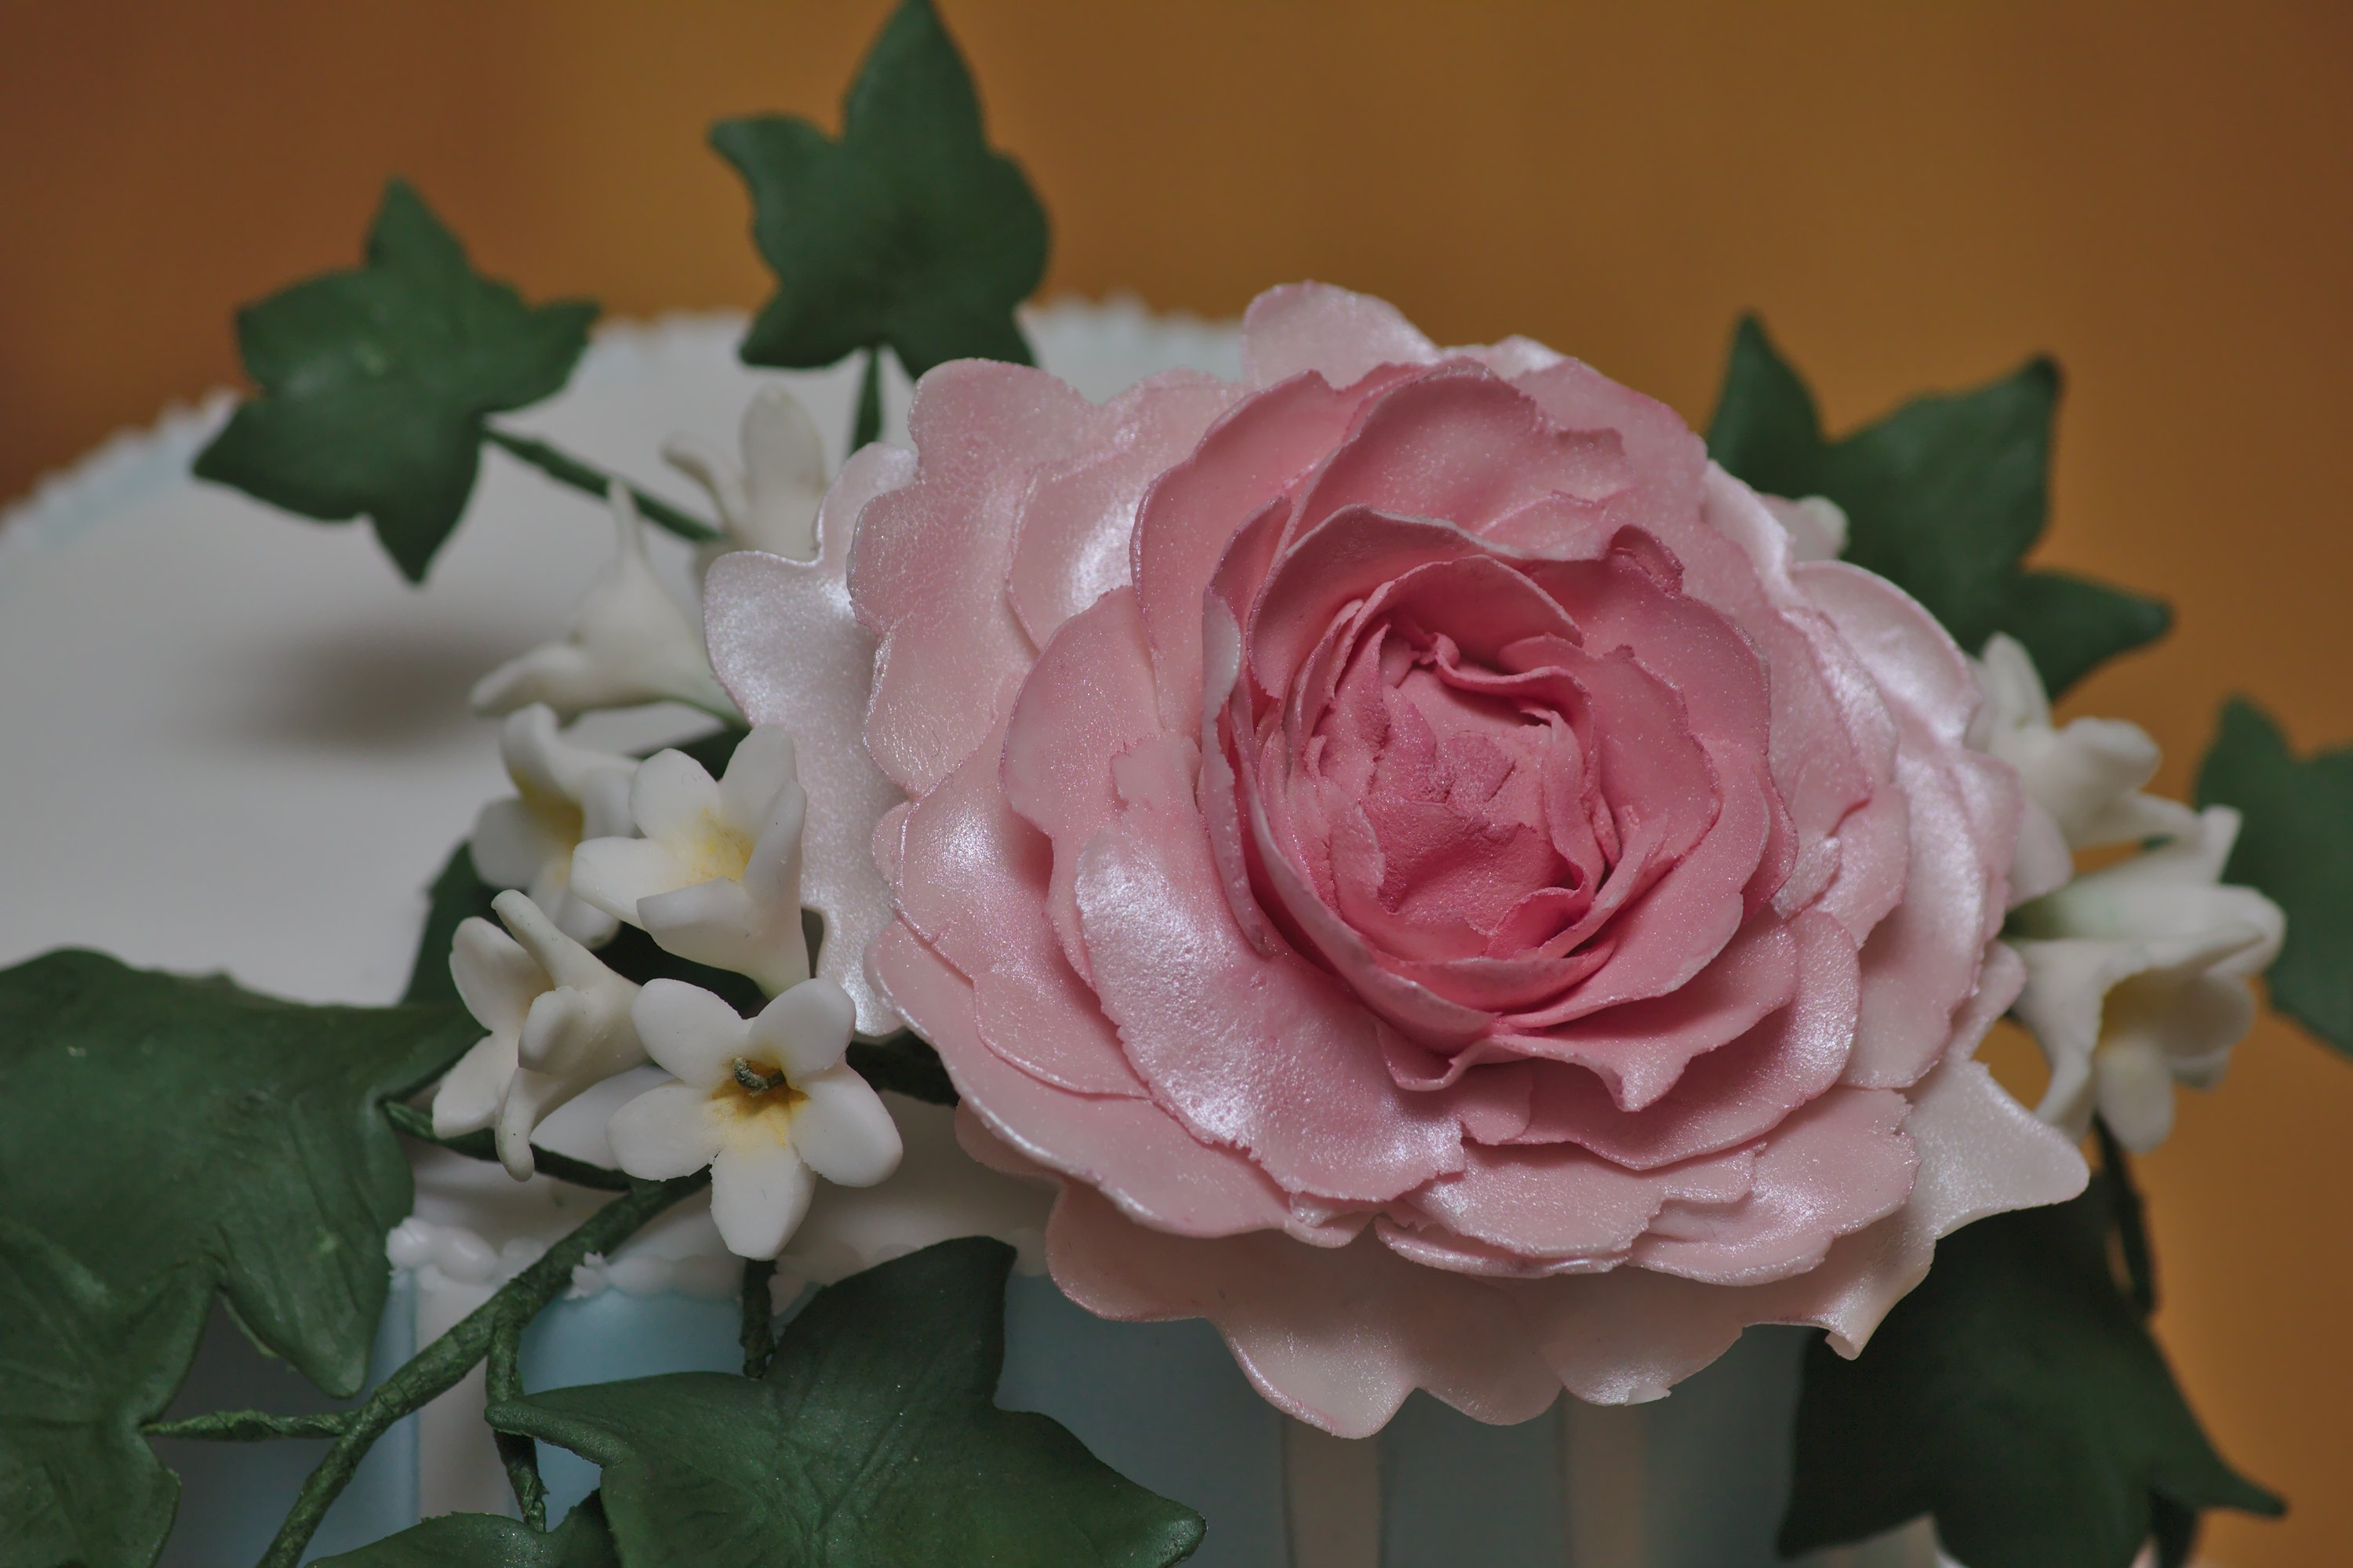 Gumpaste Peony Type Flower With Ivy And Filler Flowers I Attempted